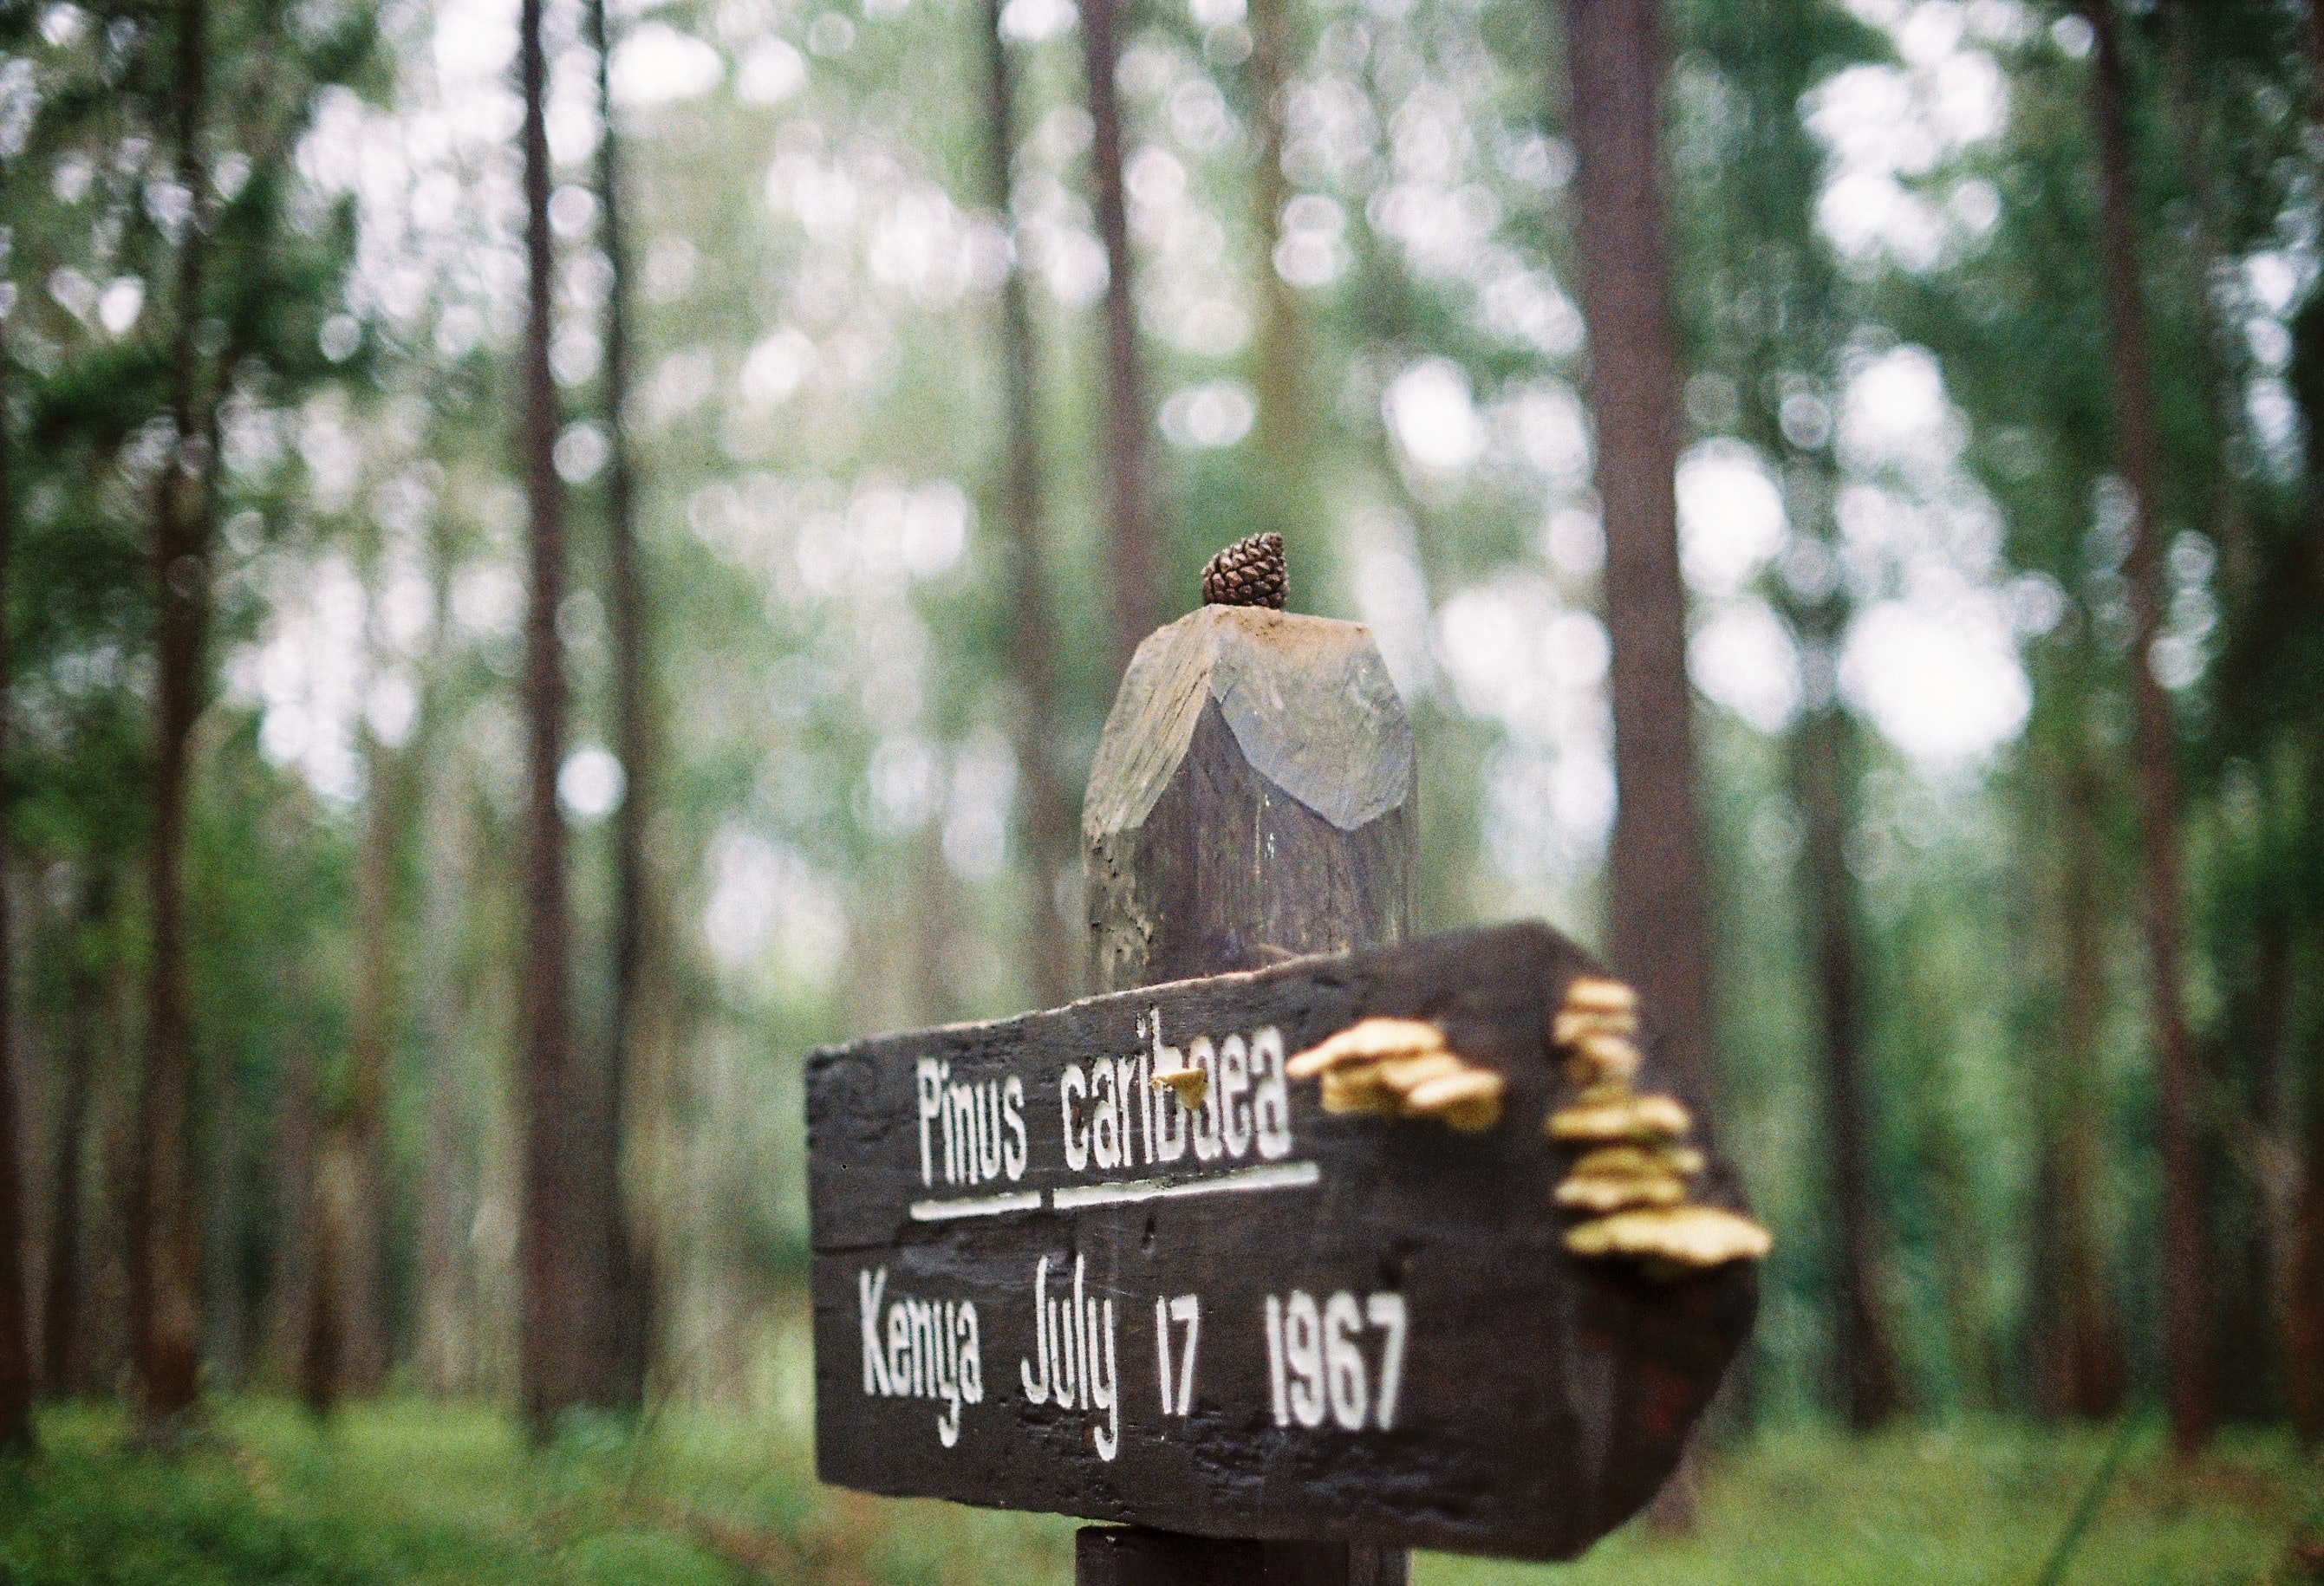 focus photography of wooden arrow signage